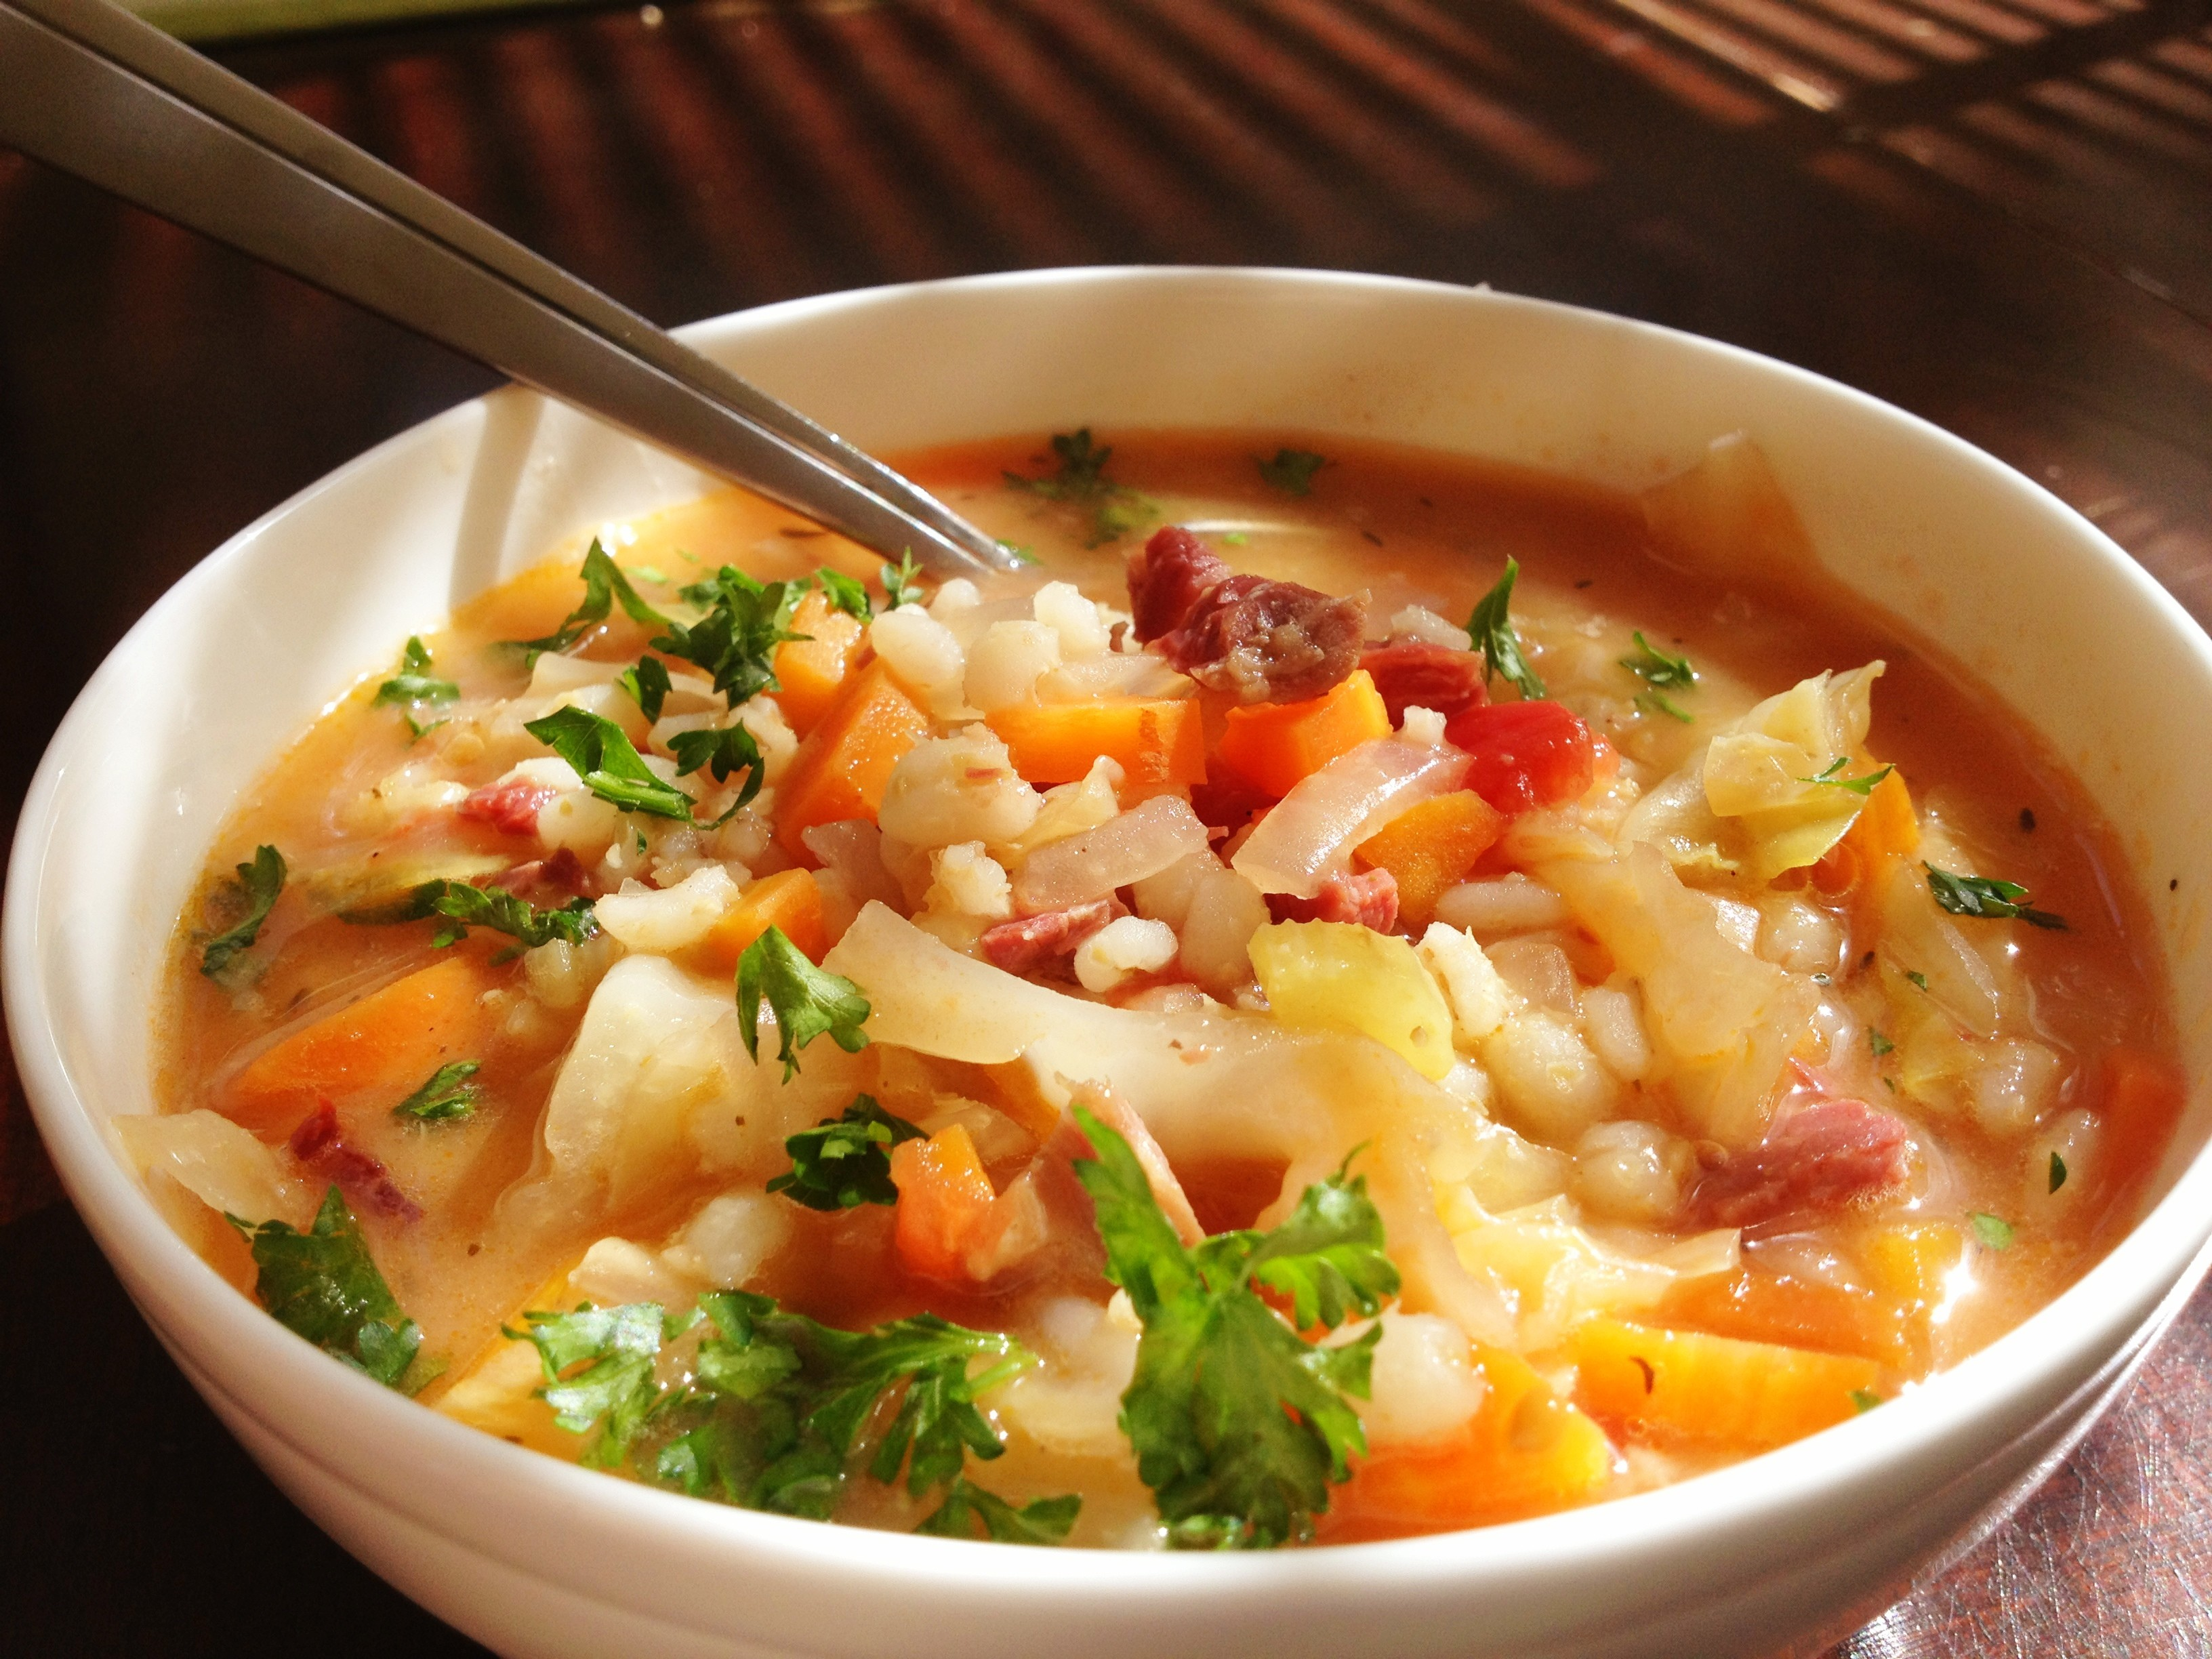 beef and cabbage soup corned beef and cabbage soup i love corned beef ...